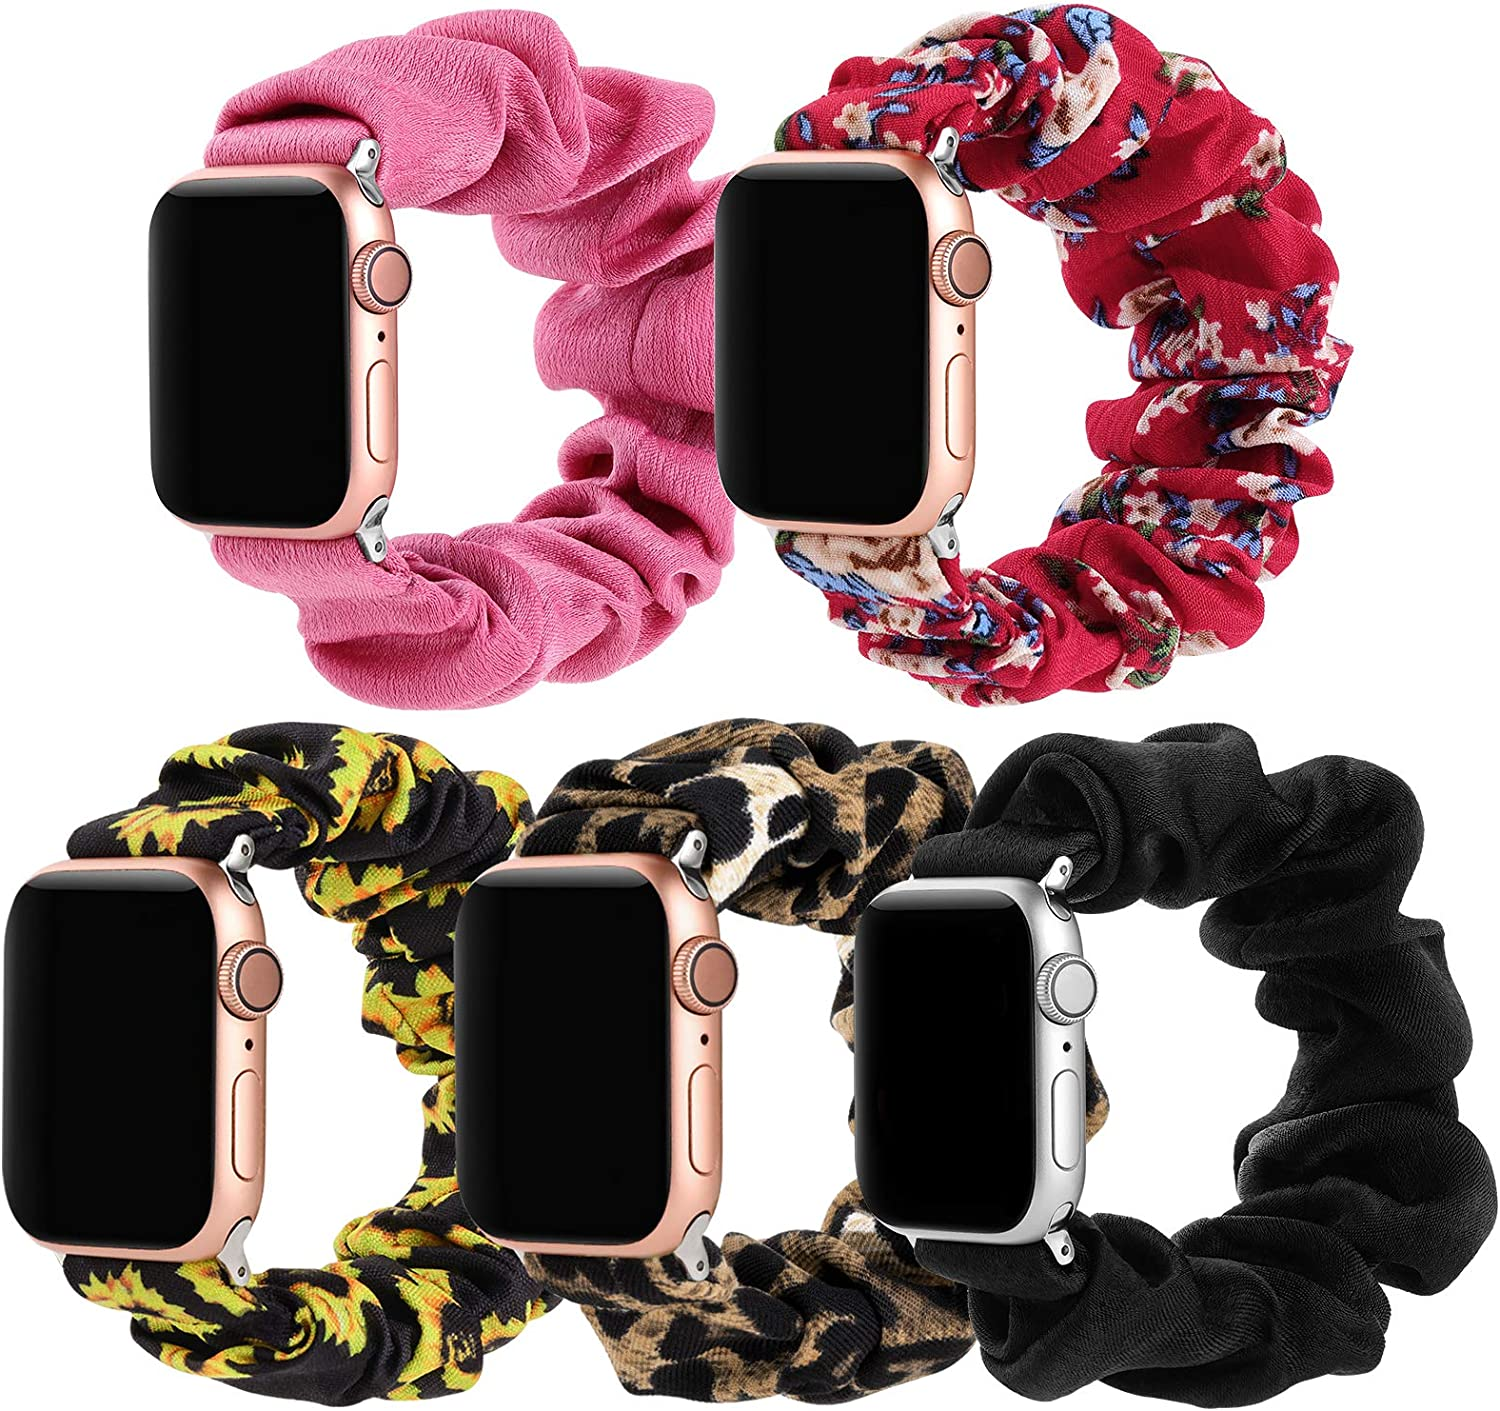 Simpeak 5 Pack Elastic Scrunchie Band Compatible with Apple Watch Series 6 SE 5 4 3 2 1, Soft Women Pattern Strap Replacement for iWatch 44mm 42mm,Small,Black/Pink/Leopard/Sunflower/Flower